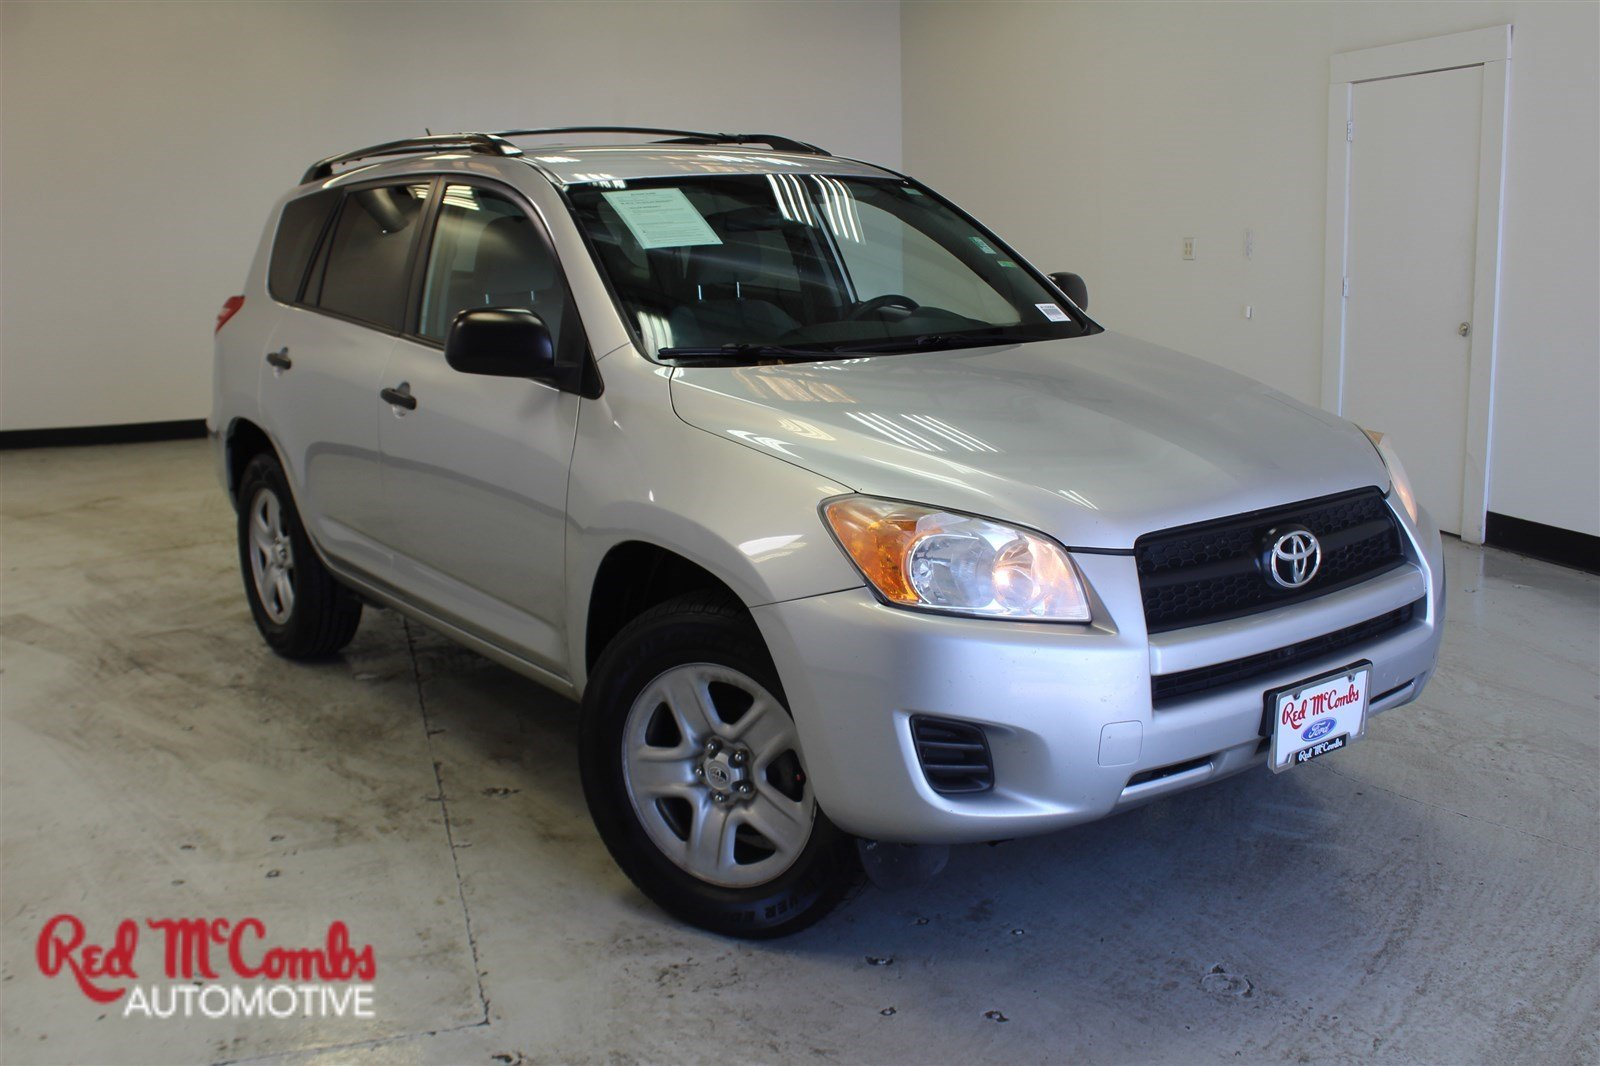 calgary toyota alberta in sale inventory used for